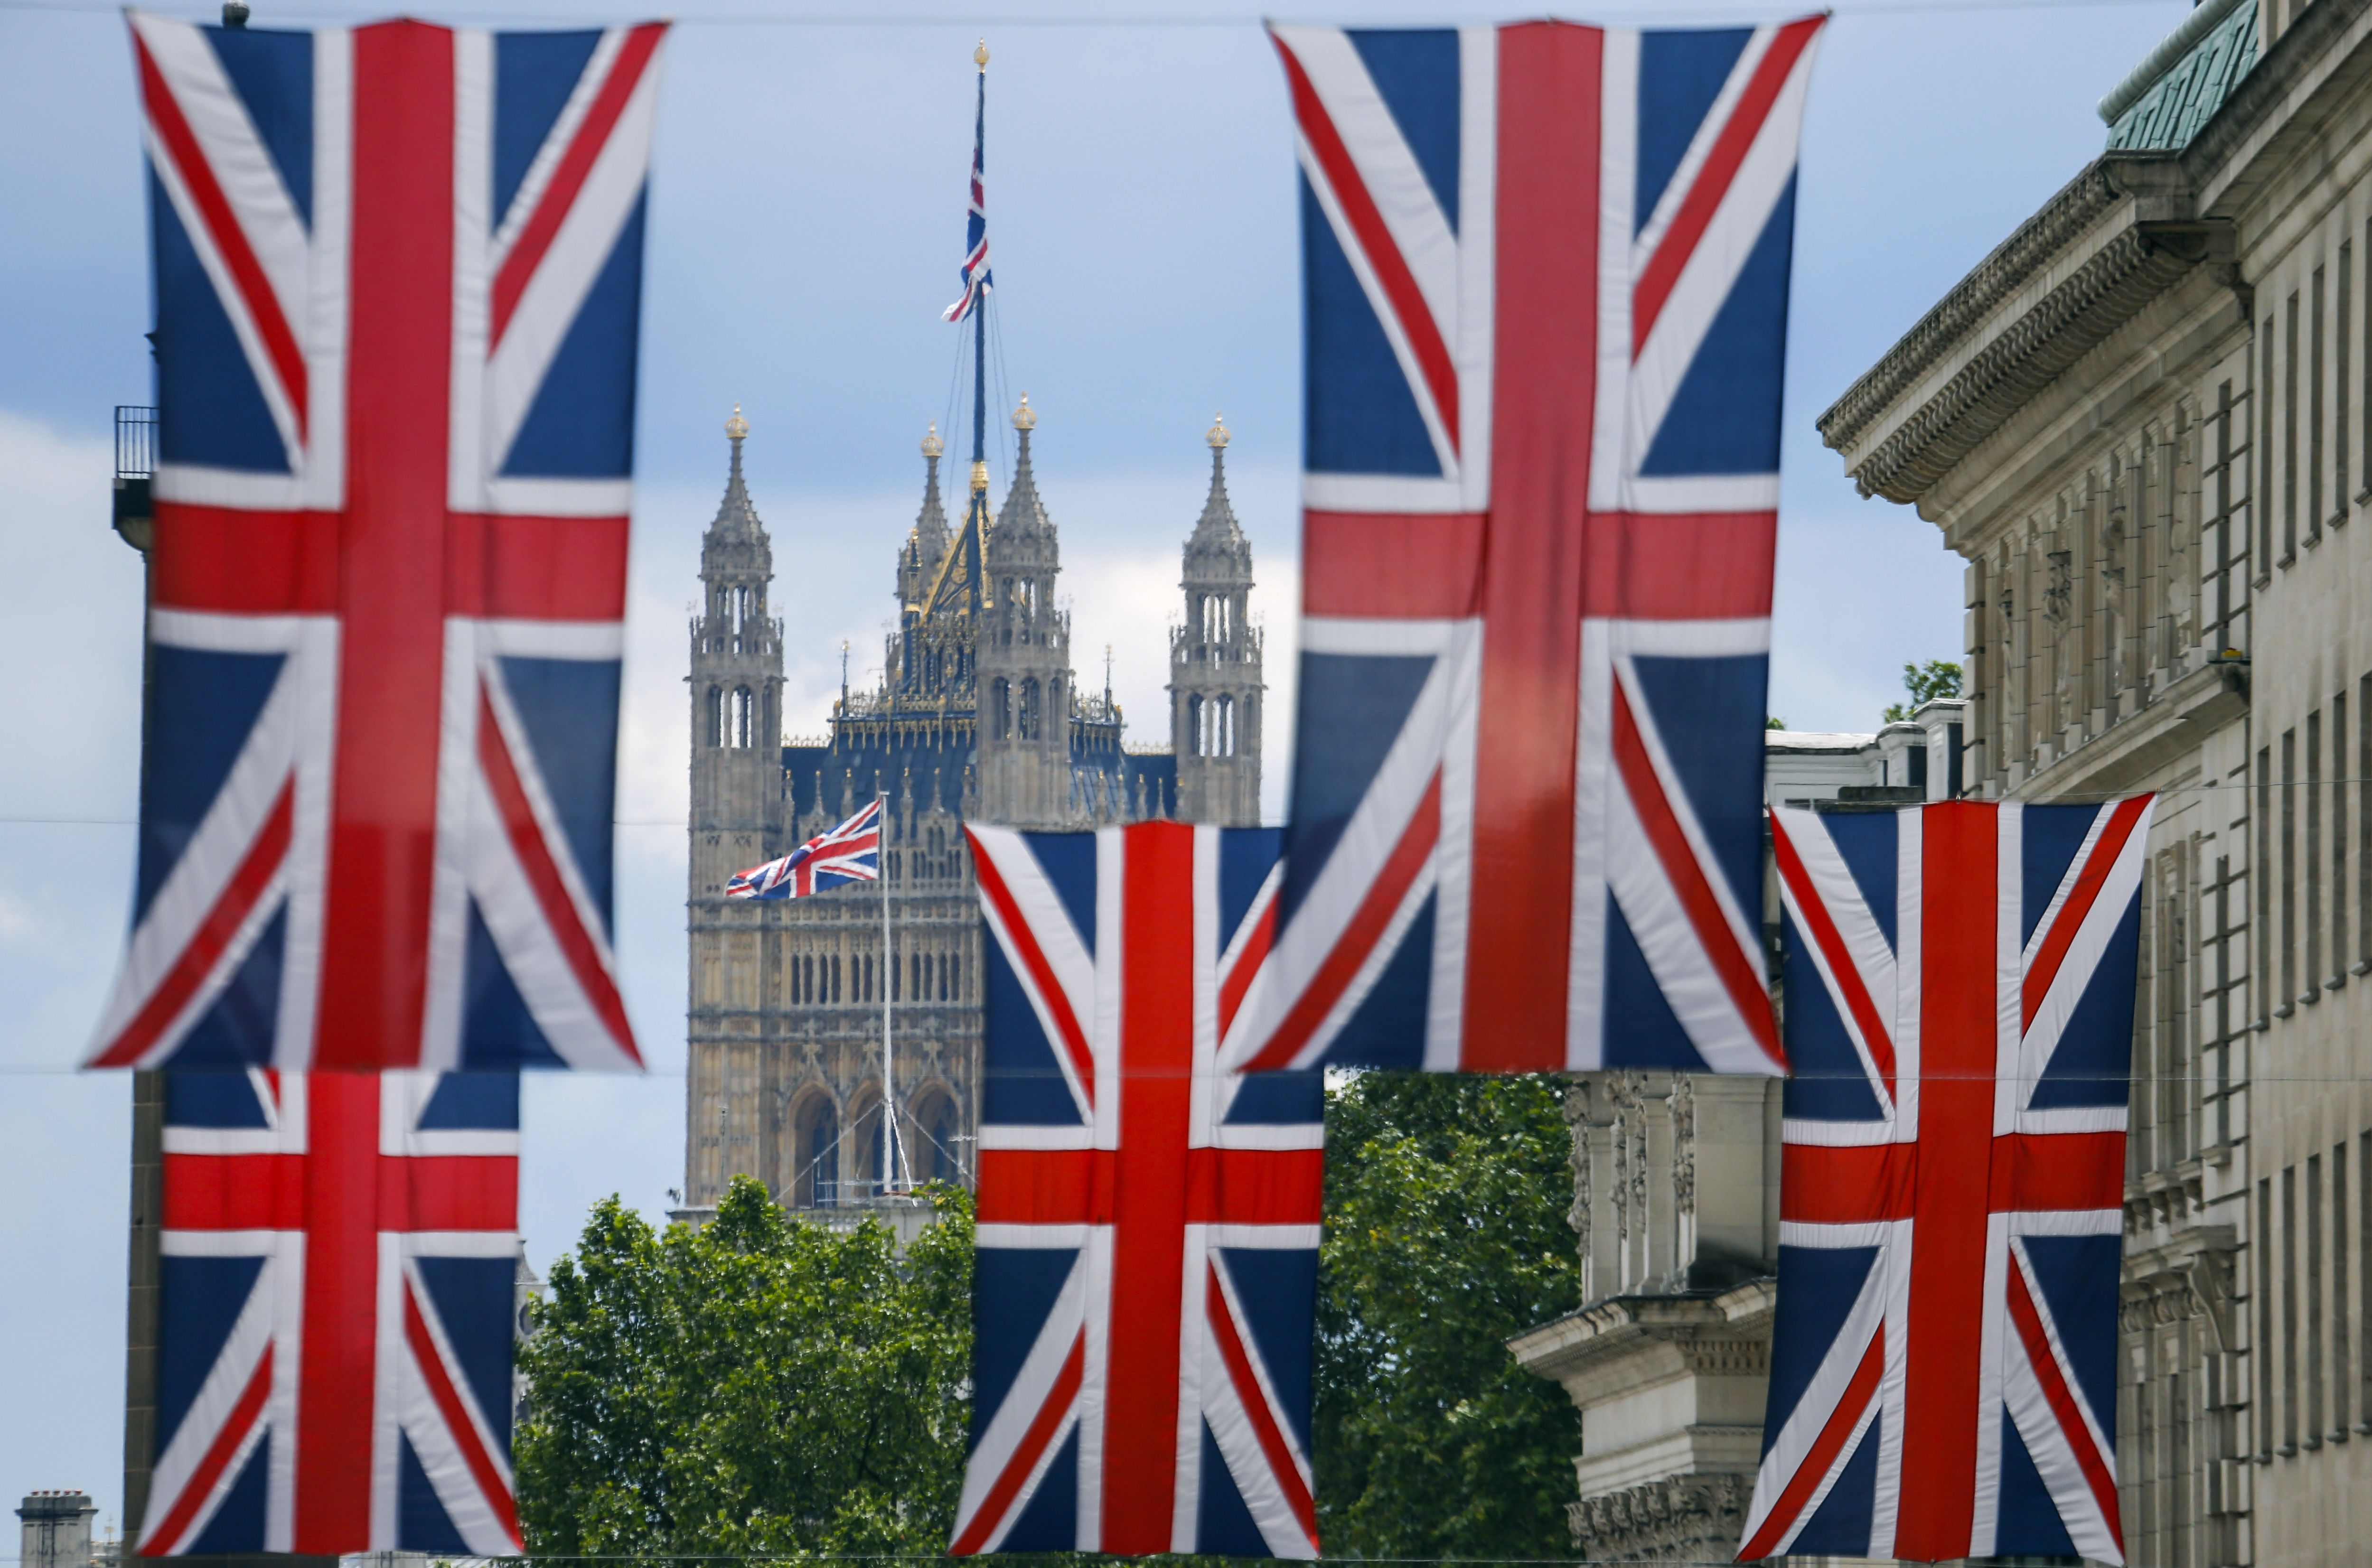 Union flag banners hang across a street near the Houses of Parliament in central London on June 25, 2016